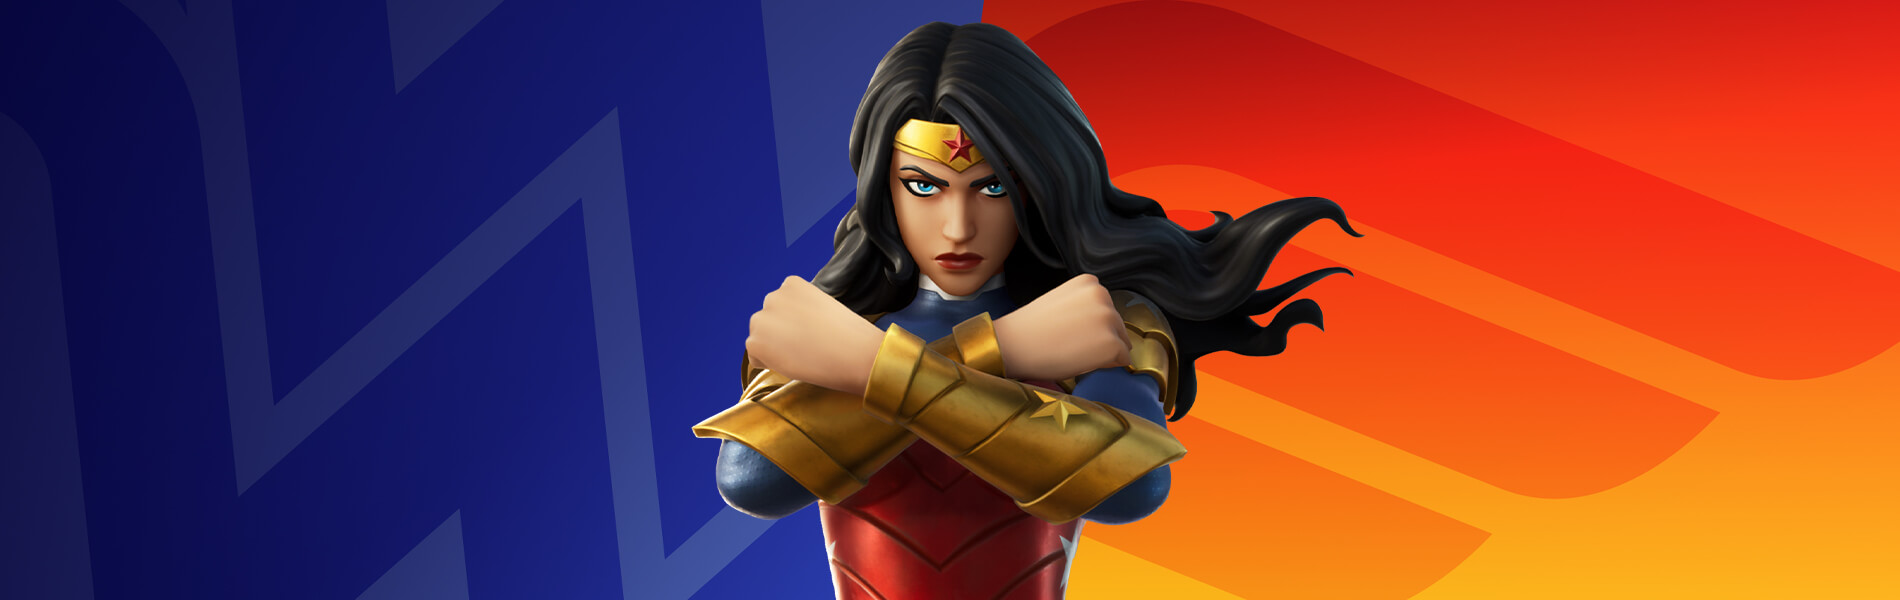 Fortnite Wonder Woman Outfit